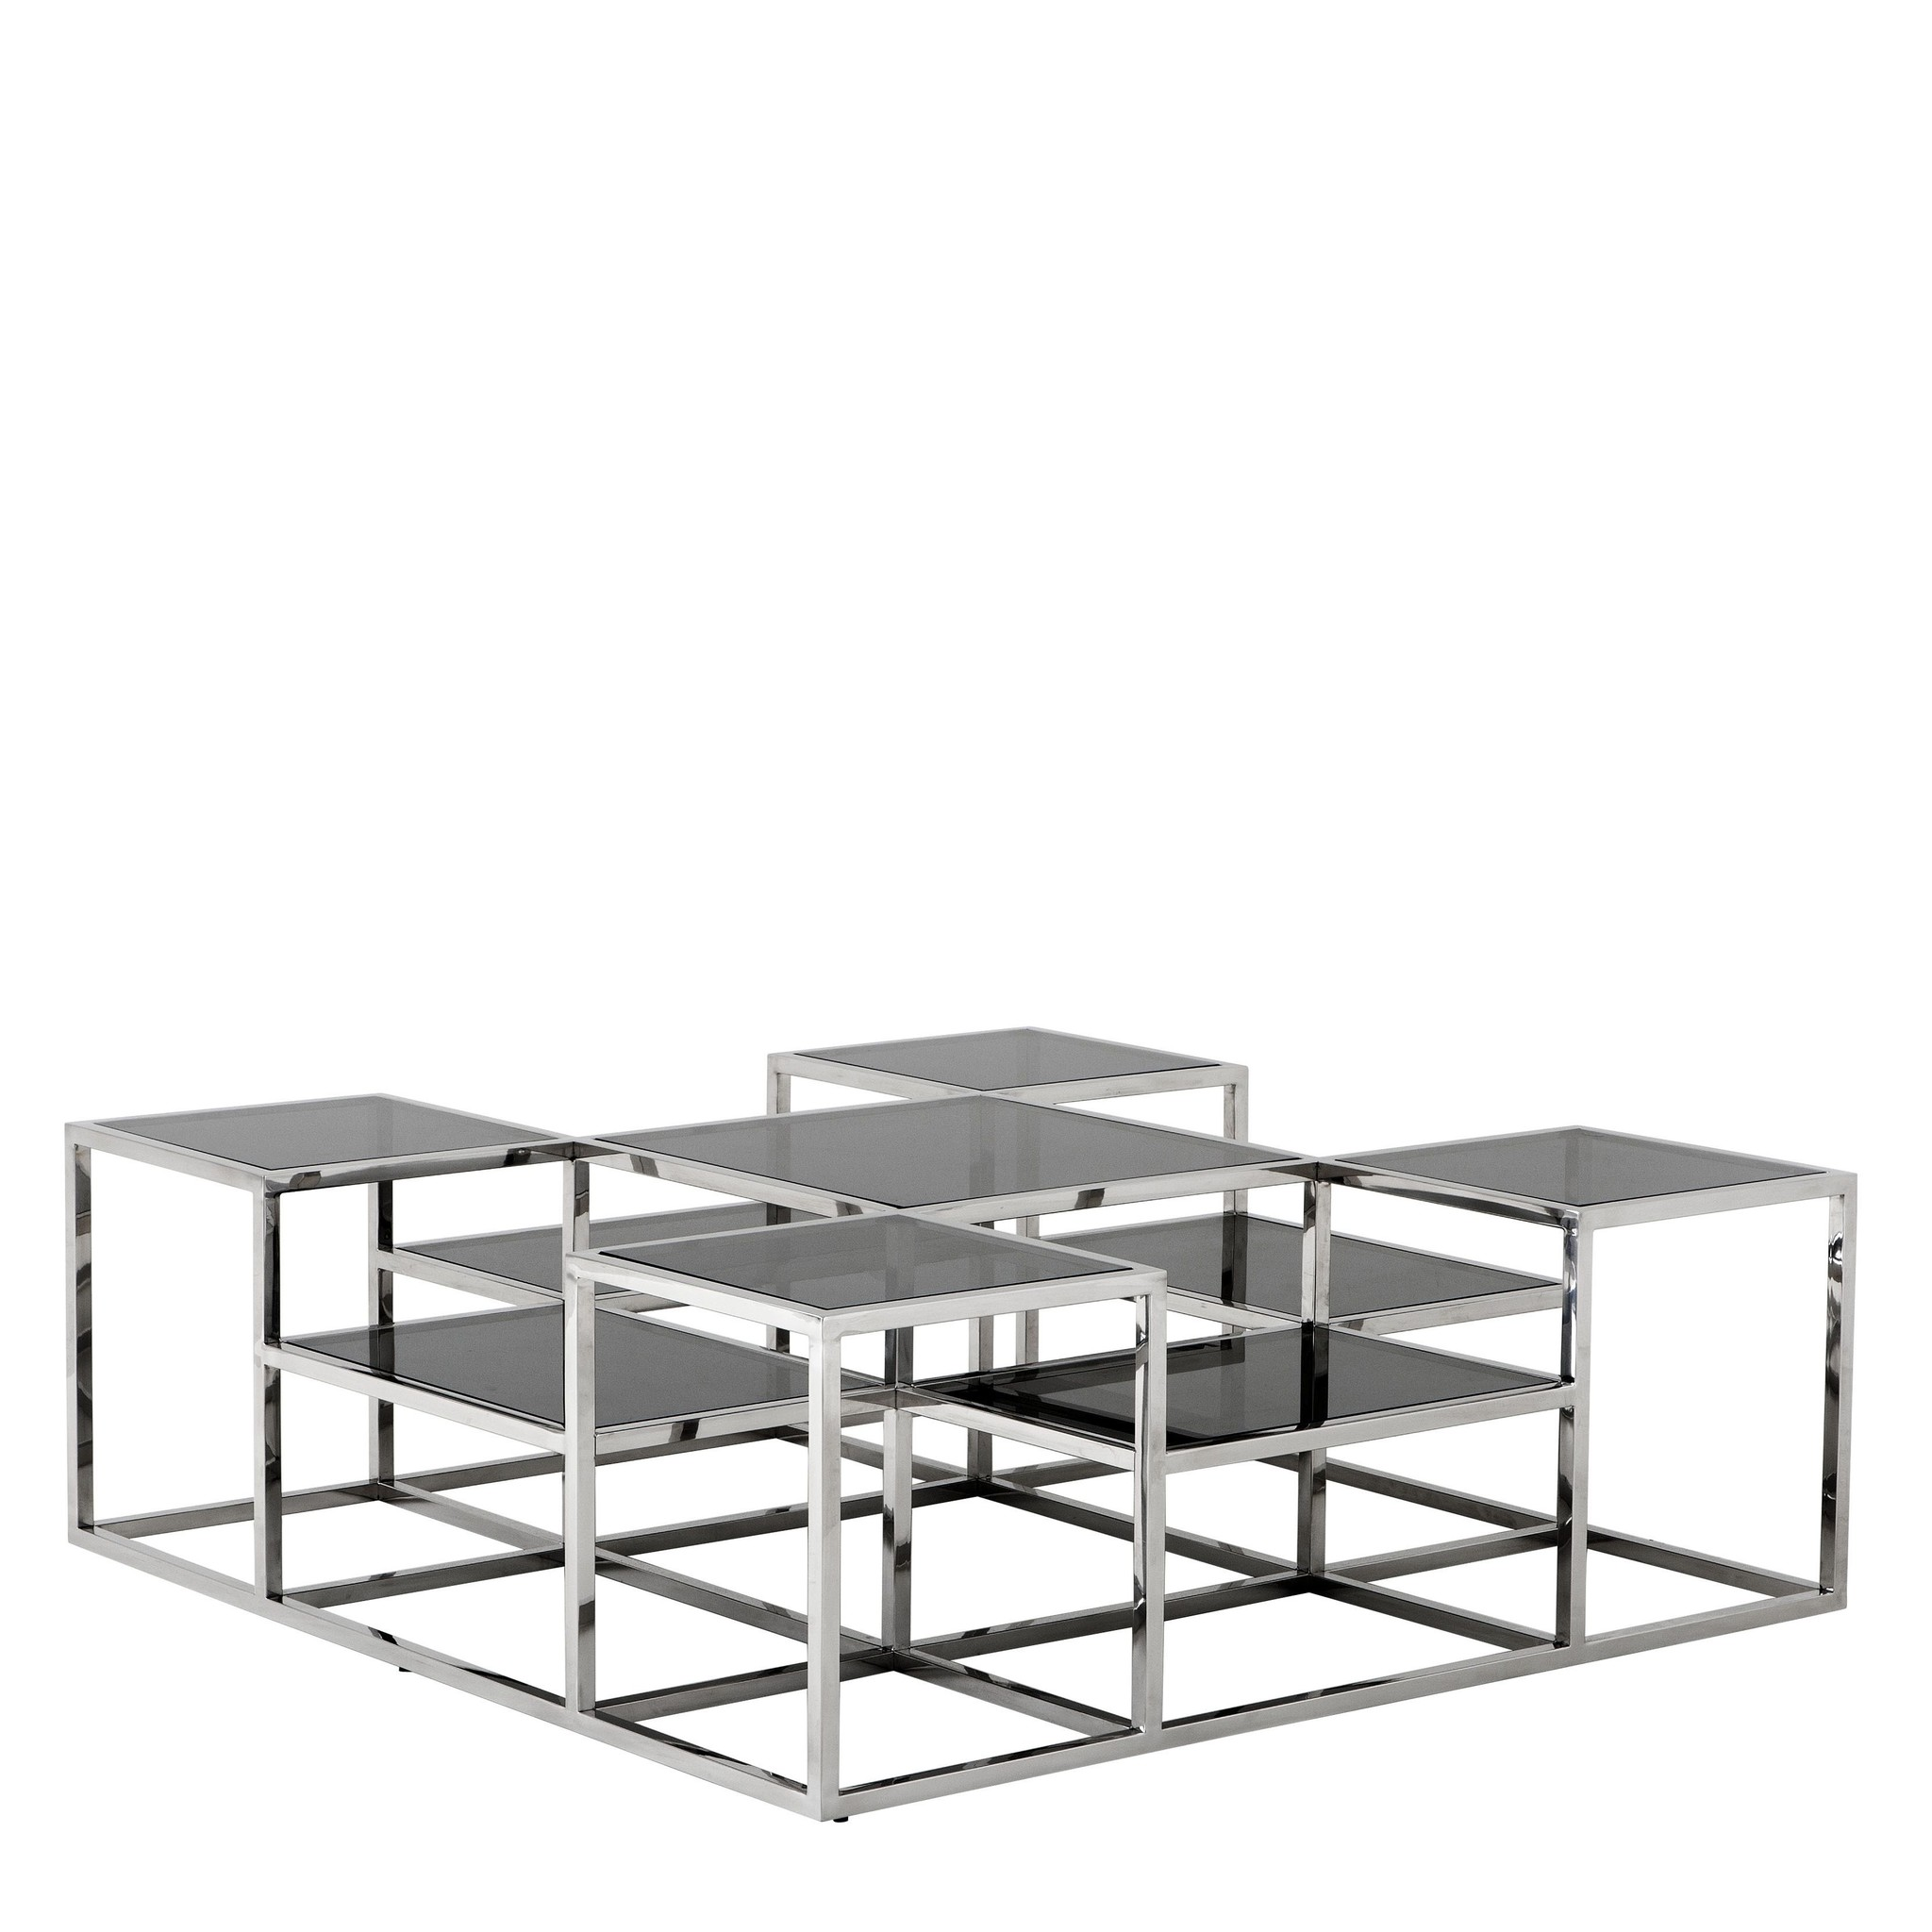 Smythson Designer Coffee Table 120 X 120 X H 42 Cm Wilhelmina